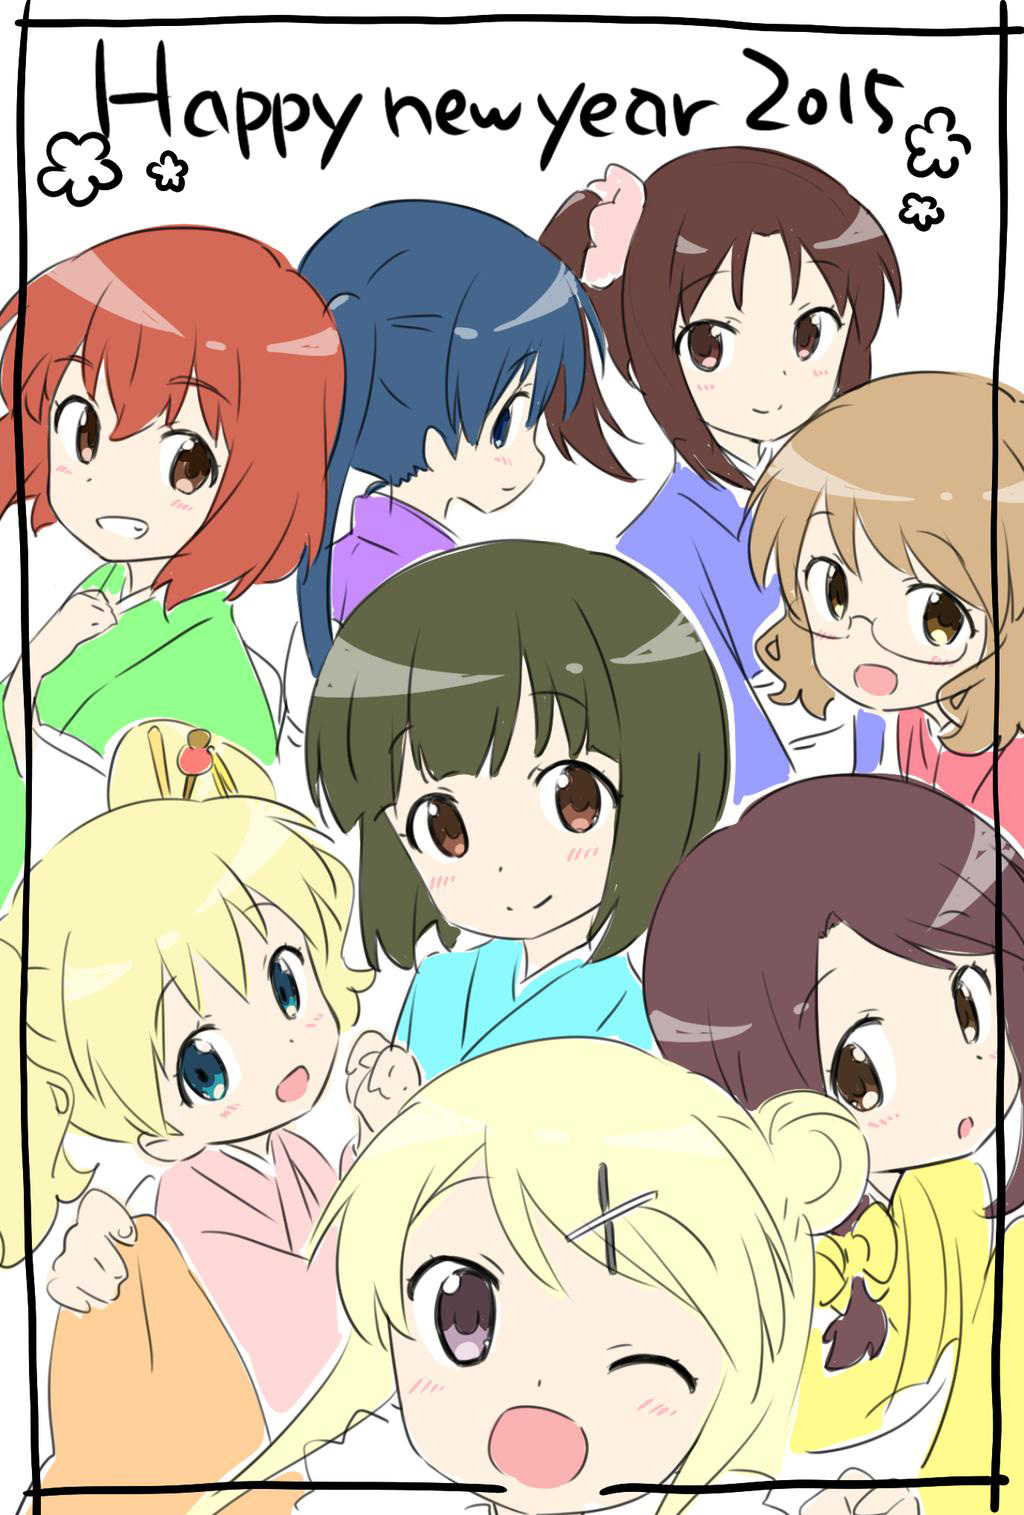 2015-Anime-Happy-New-Year-Kiniro-Mosaic